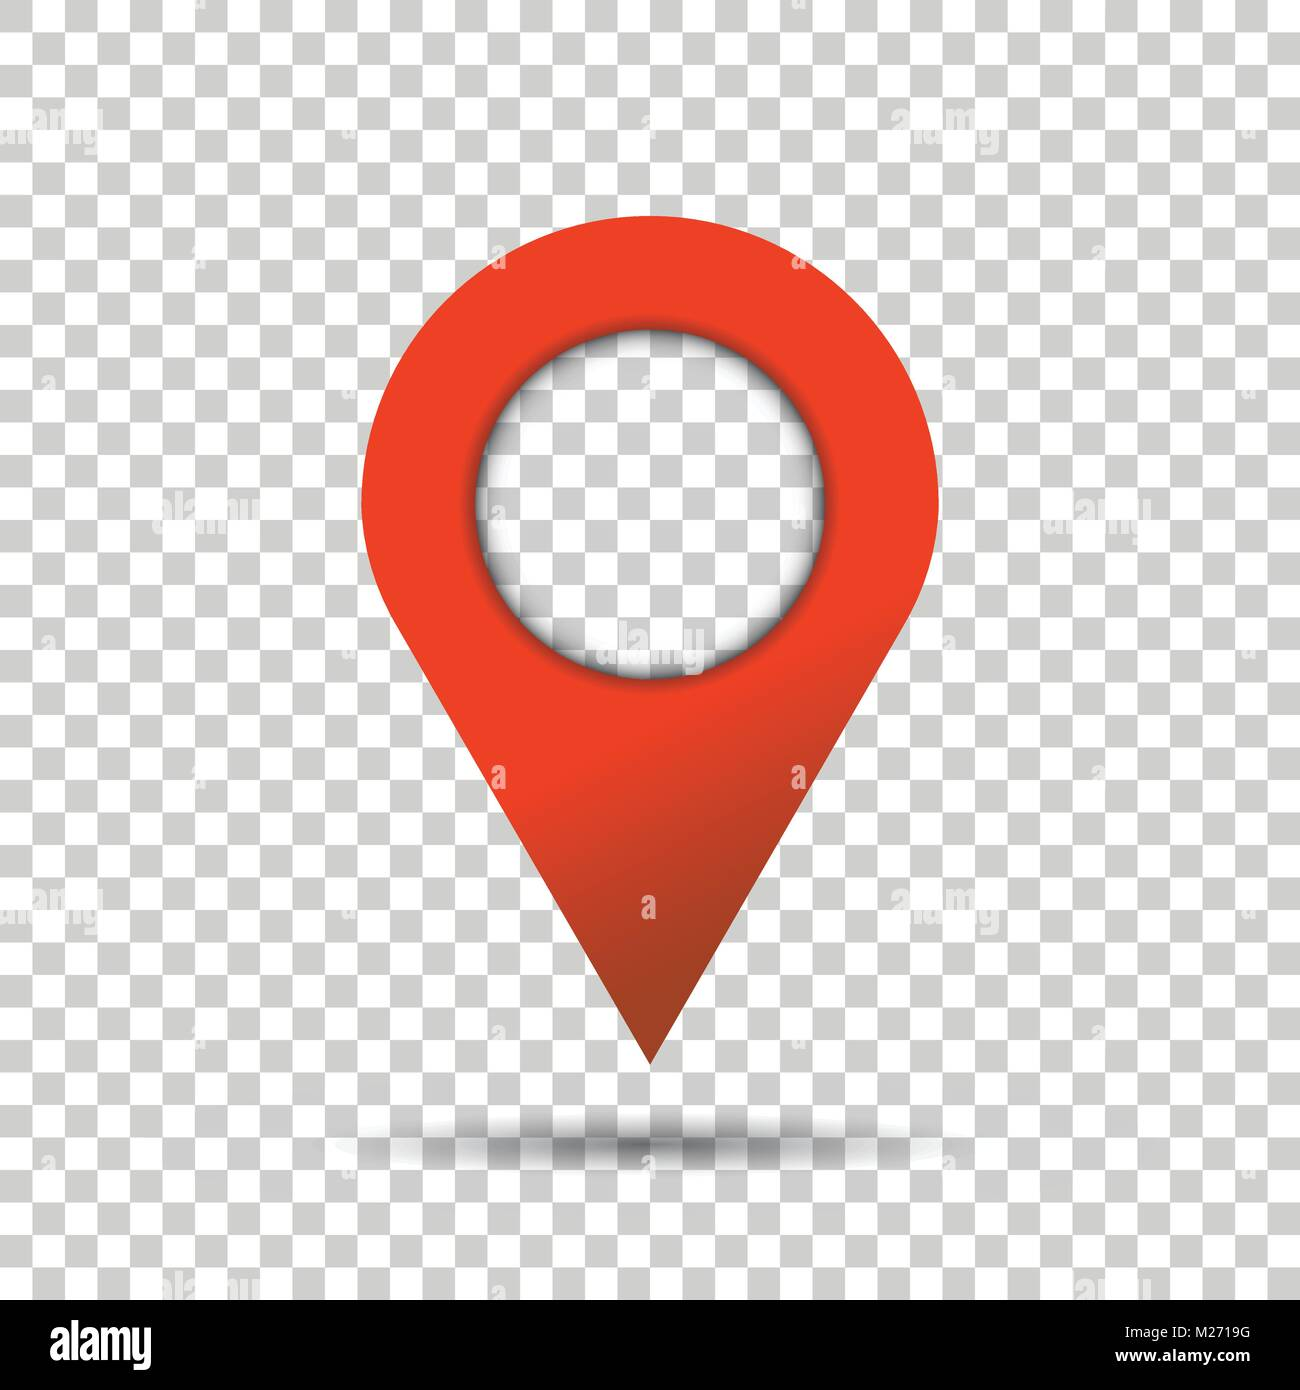 Pin icon vector. Location sign in flat style isolated on isolated background. Navigation map, gps concept. - Stock Vector